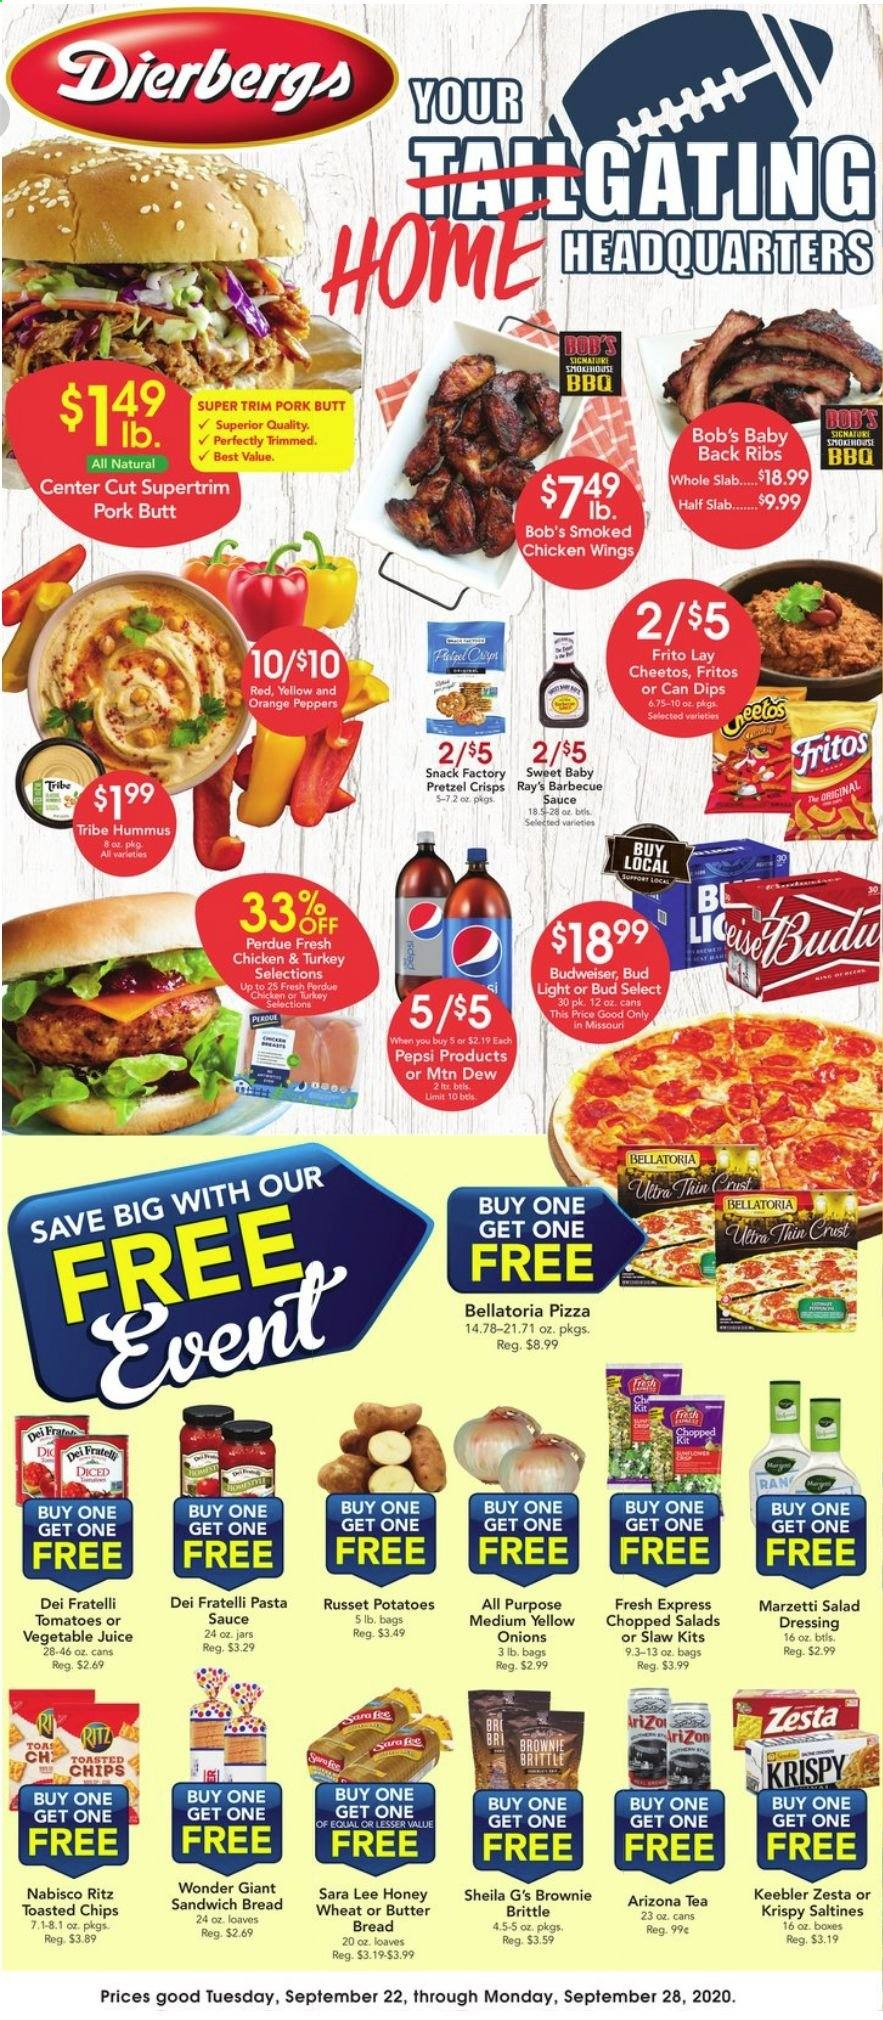 Dierbergs Flyer - 09.22.2020 - 09.28.2020 - Sales products - baby back pork ribs, barbecue sauce, box, bread, budweiser, butter, crest, fritos, russet potatoes, salad dressing, tea, tomatoes, turkey, yellow onions, honey, hummus, jar, pizza, pork meat, potatoes, pretzels, cheetos, chicken, pasta sauce, pepsi, onion, orange, chicken wings, chips, juice, dressing, sandwich, snack, pasta, lee, bud light, ritz, salad, sauce, ribs, wings, peppers, brownie, tomato, barbecue, vegetable, onions, tribe. Page 1.